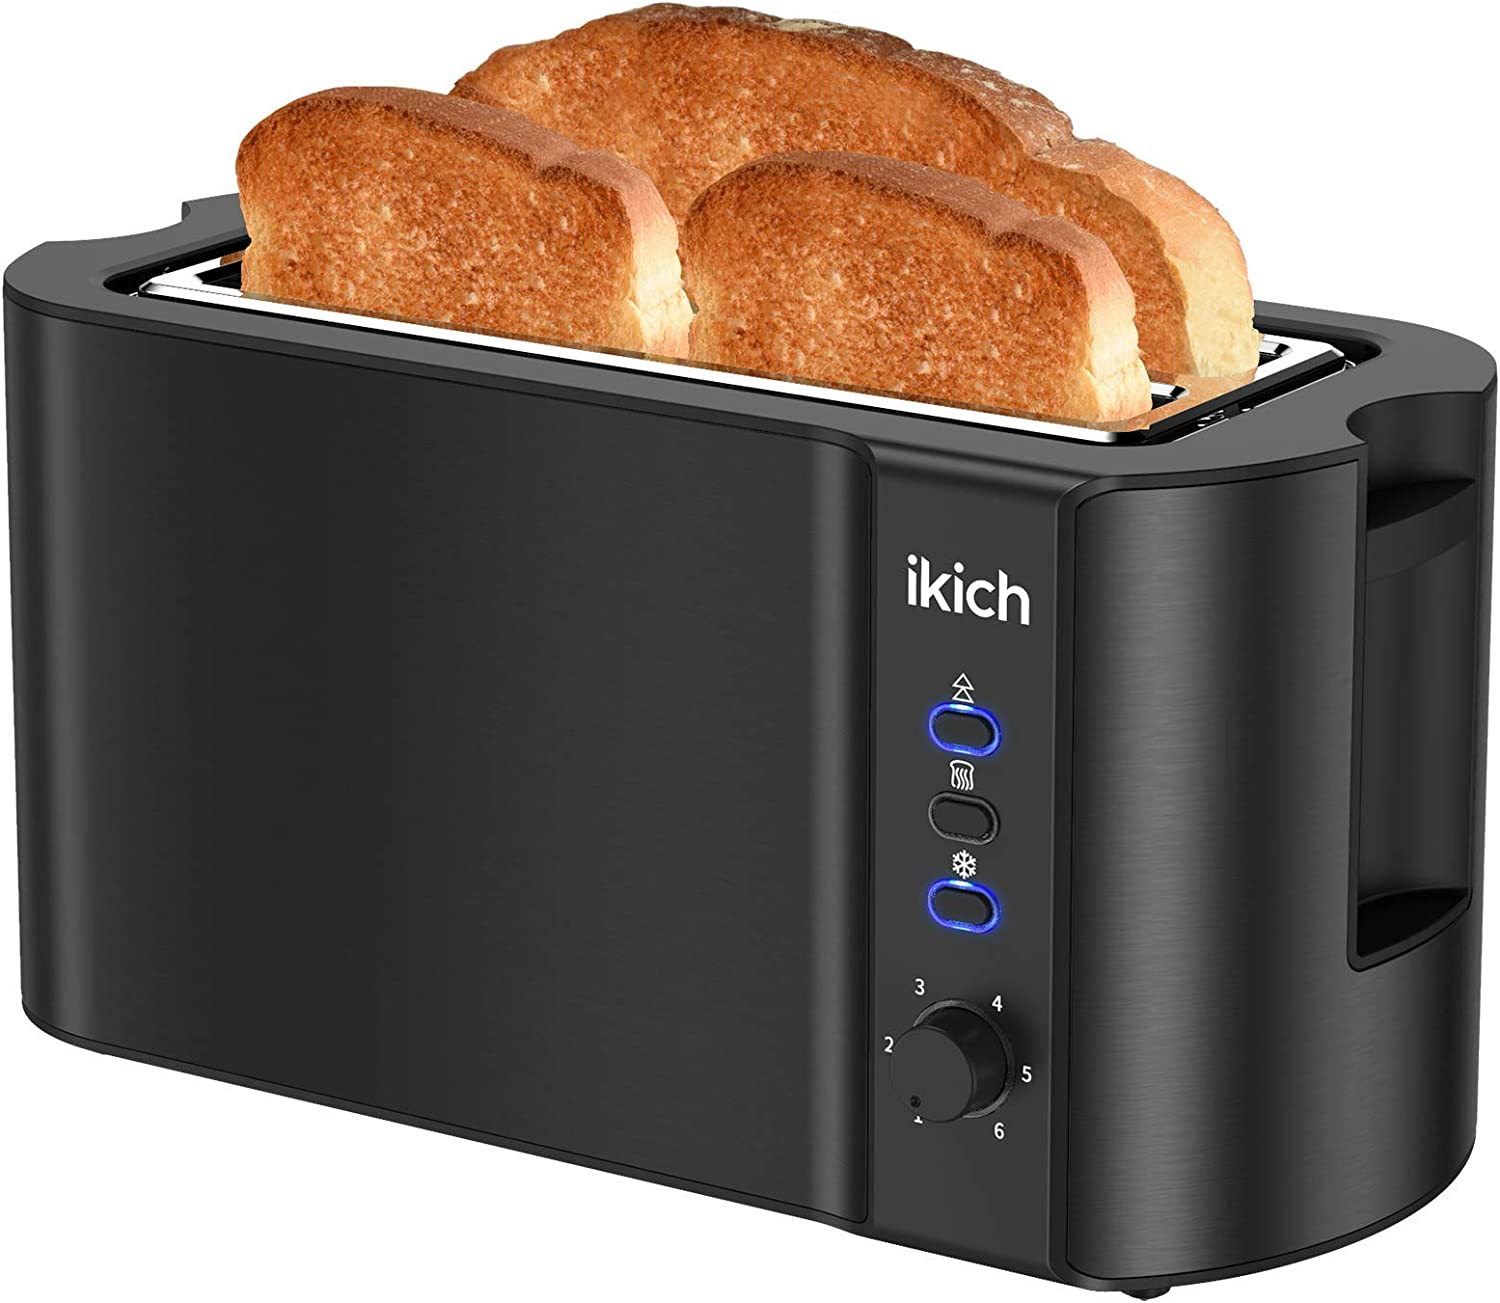 IKICH Toaster 4 Slice, Toaster 2 Long Slot Stainless Steel, Warming Rack, 6 Browning Settings, Defrost/Reheat/Cancel, Removable Crumb Tray, 1300W (Renewed)